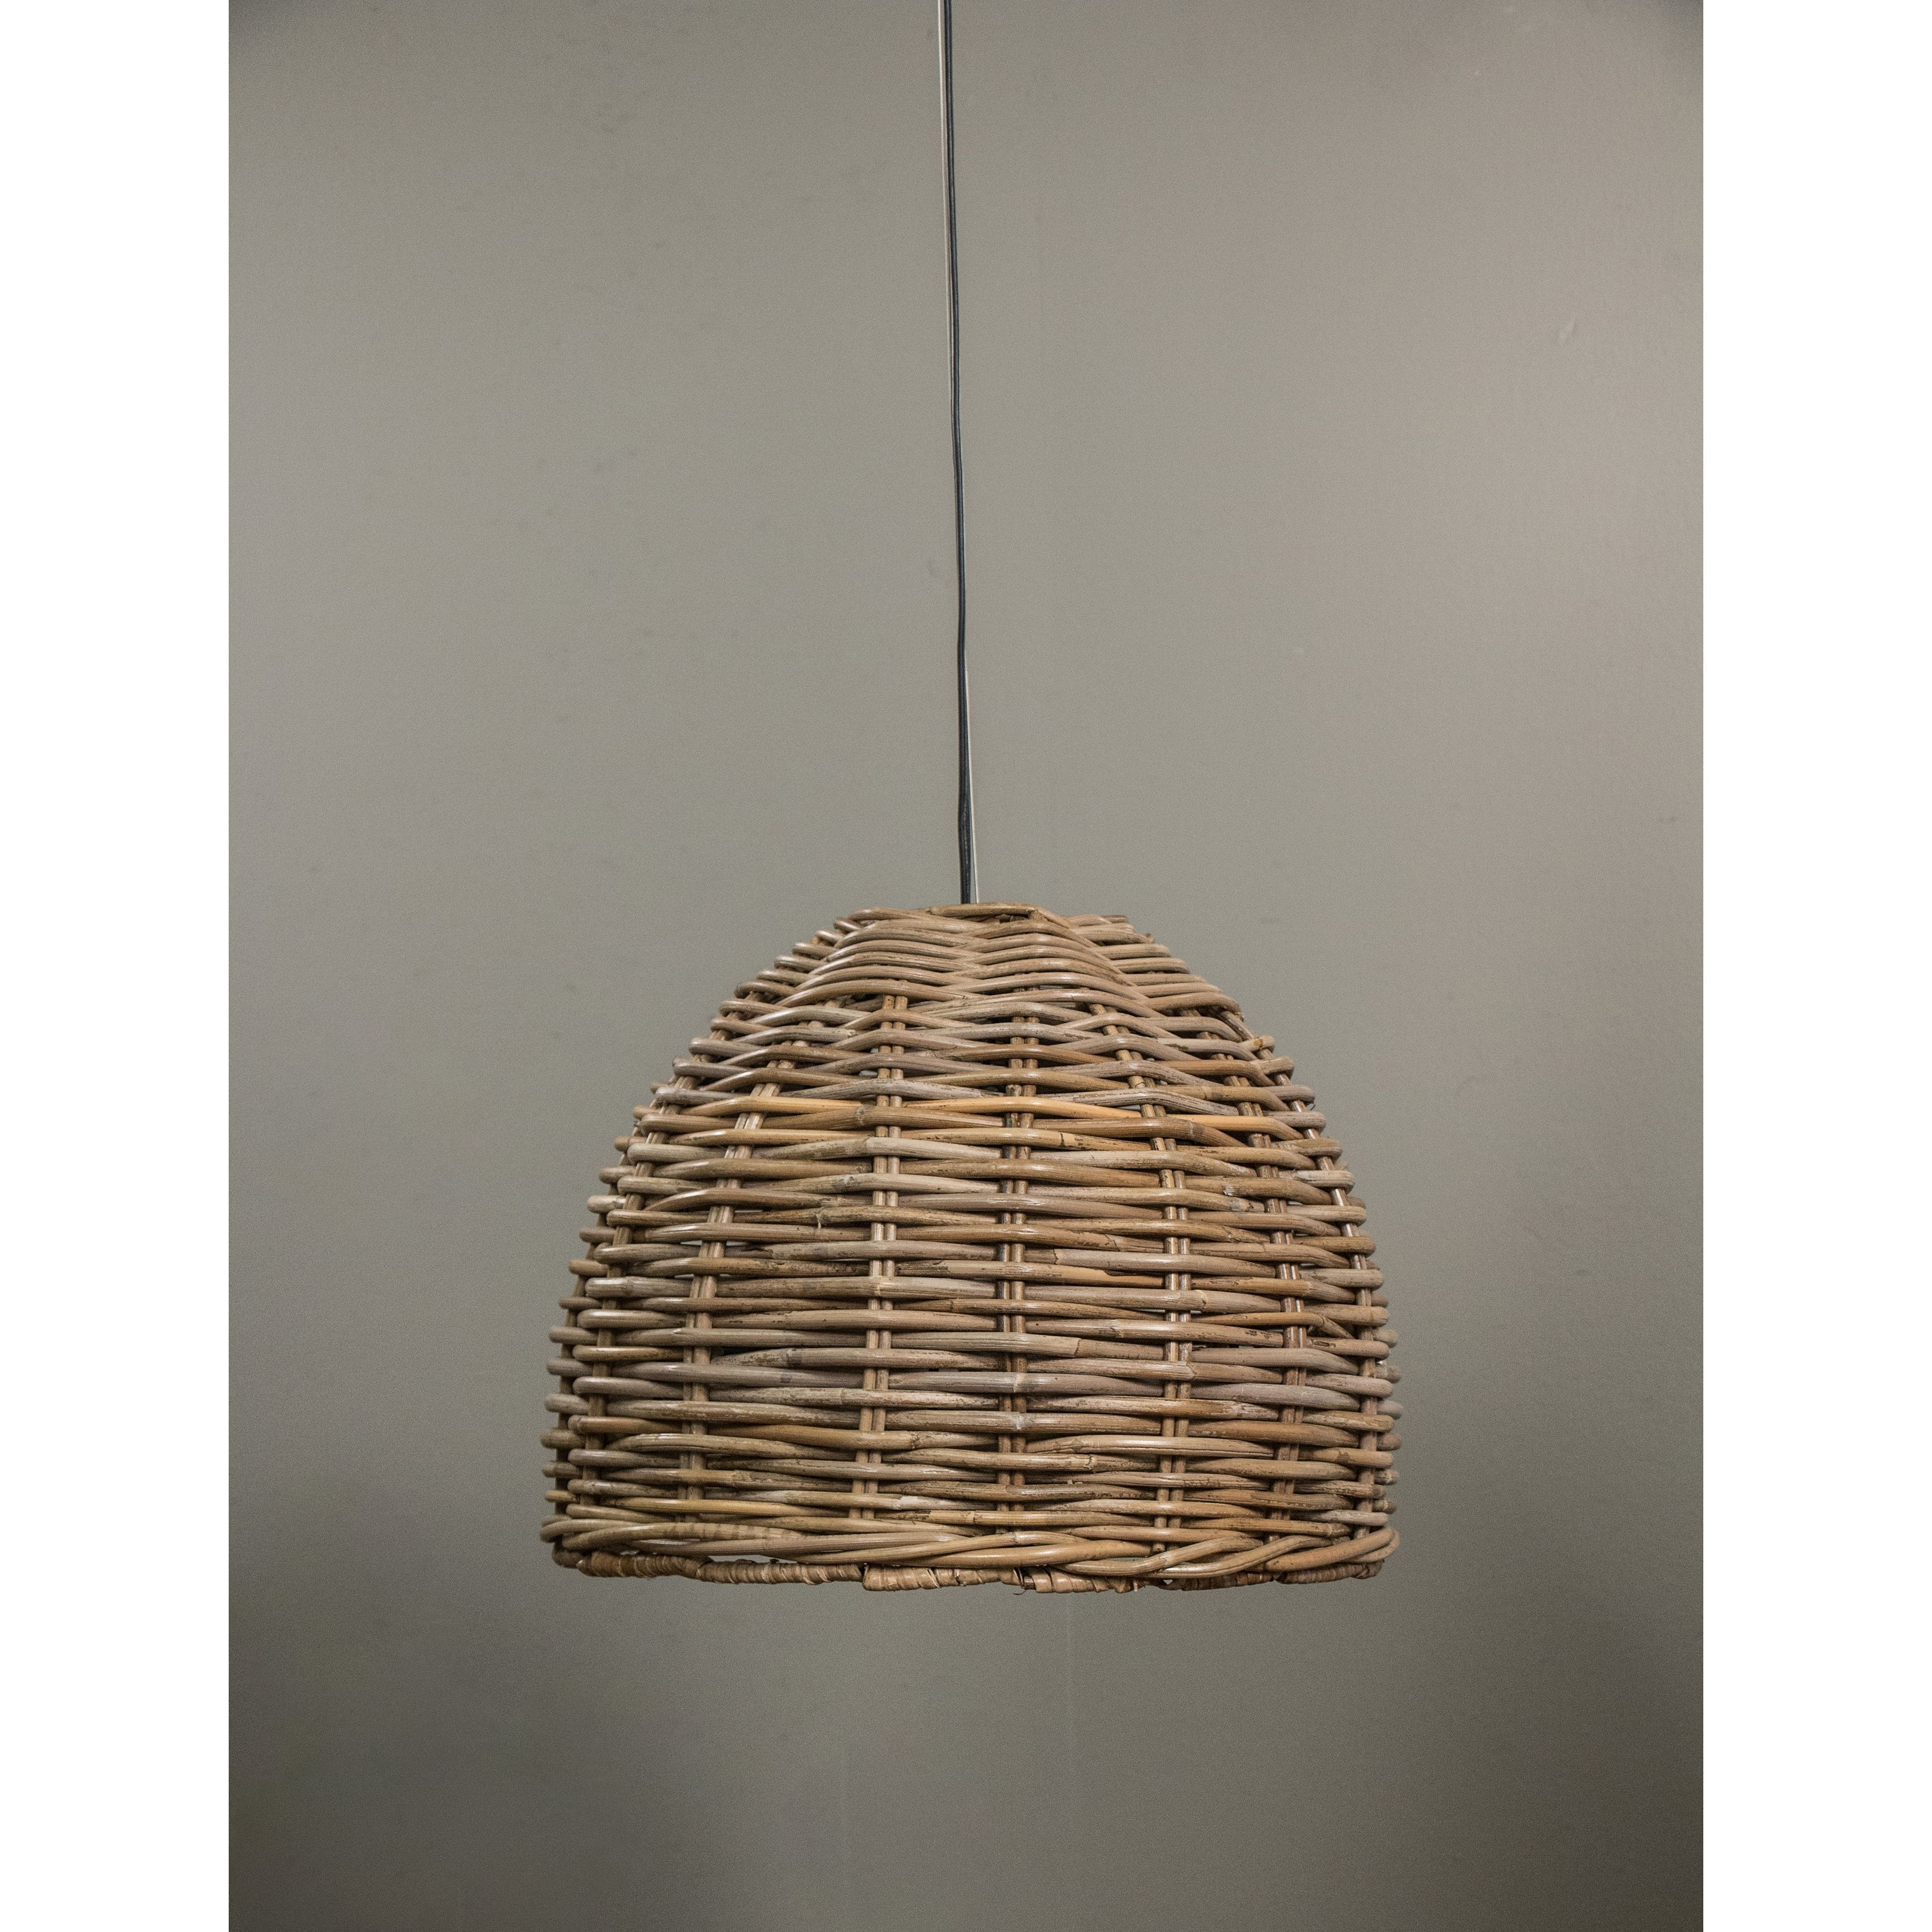 Favorite Our Dawson Hanging Lamp Is Made With The Natural Material, Rattan In Outdoor Rattan Hanging Lights (View 7 of 20)